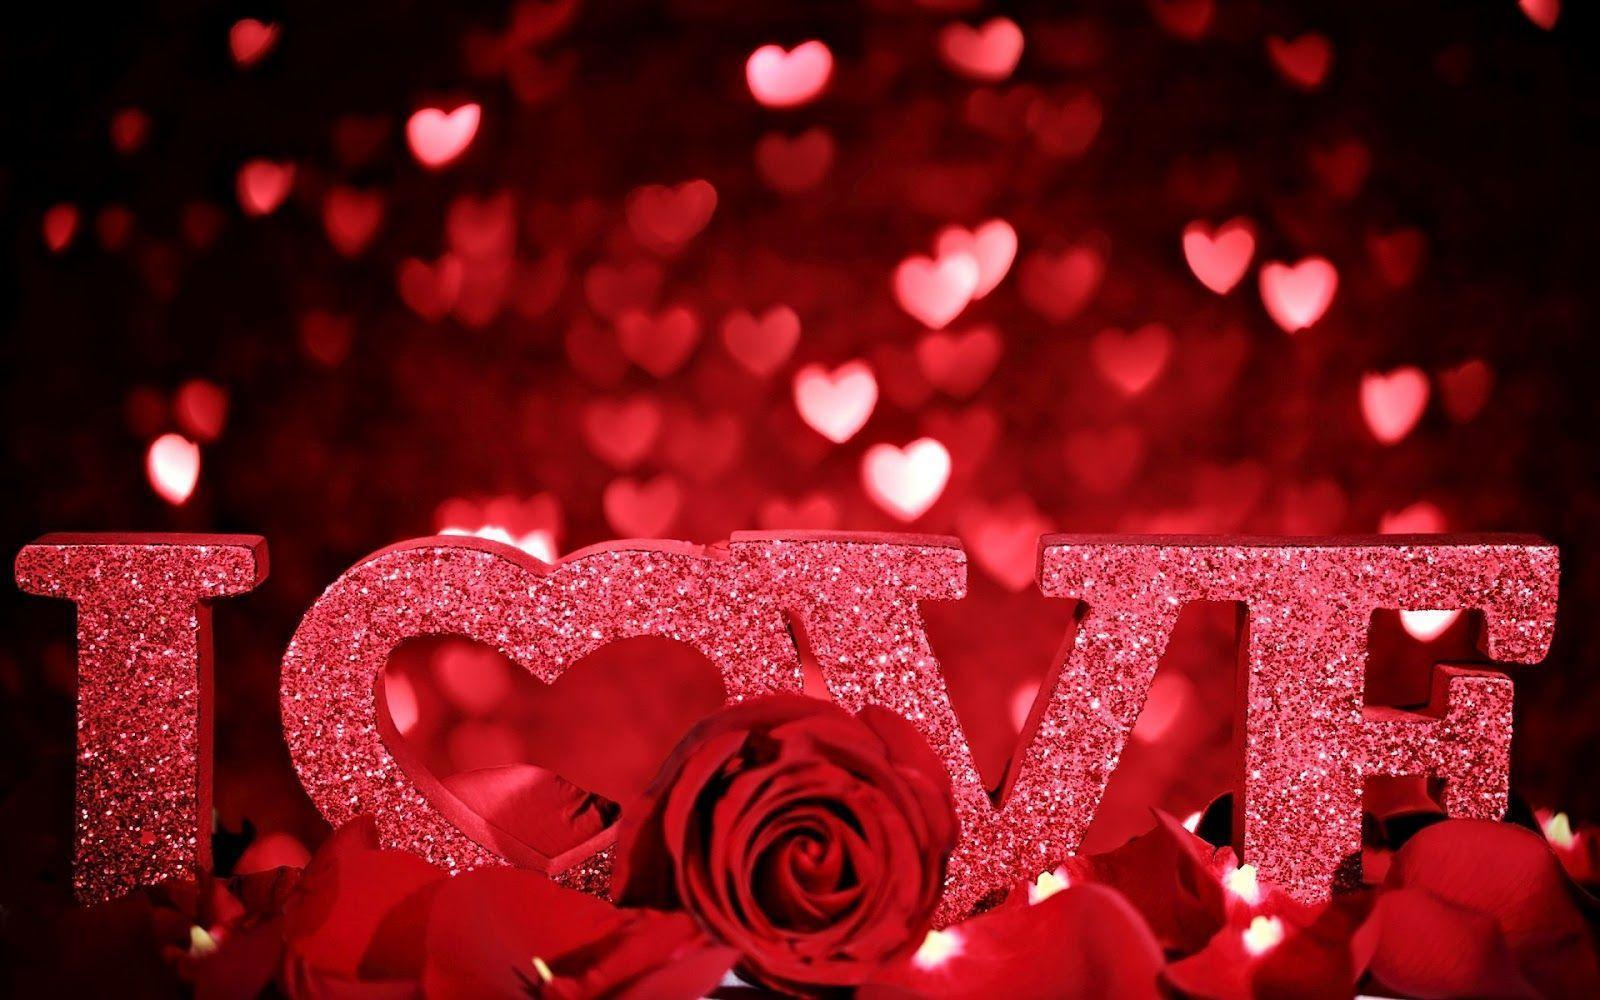 Wallpaper download dil - I Love You Wallpapers Free Download 1 What Is The High Quality